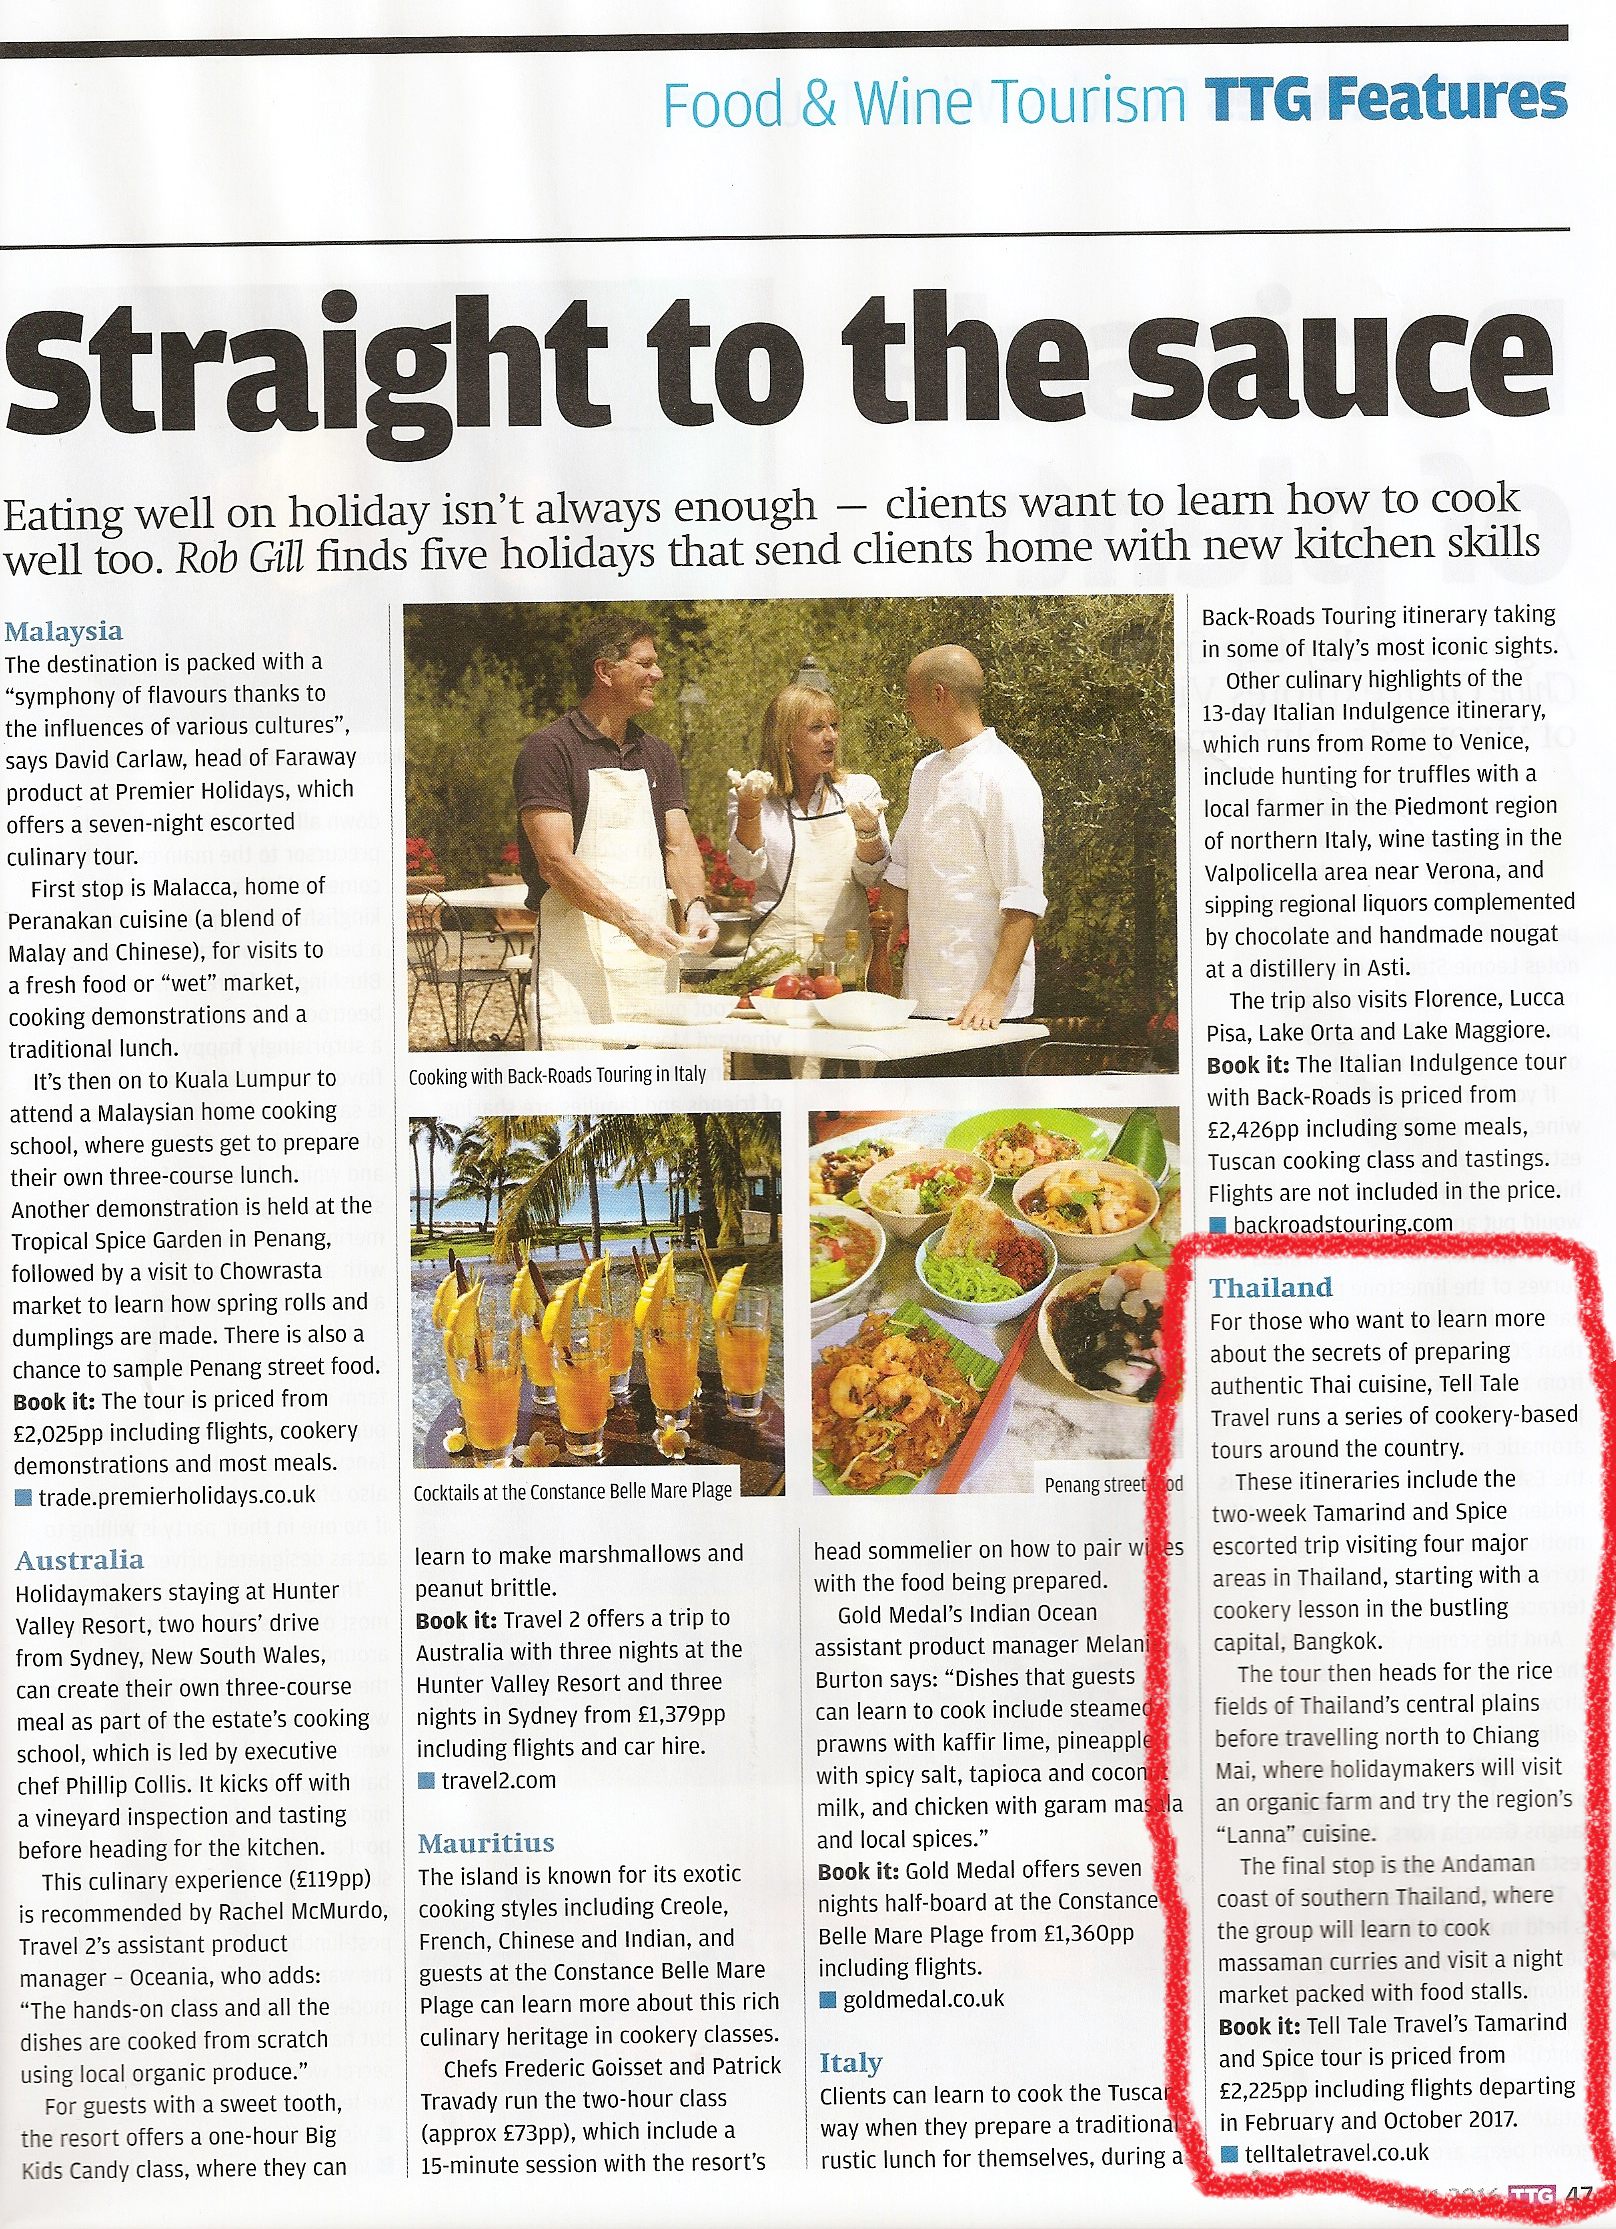 01e07e575e4 ... TTG, recommends agents book their clients onto Tell Tale Travel's  Tamarind & Spice cookery tour to Thailand in